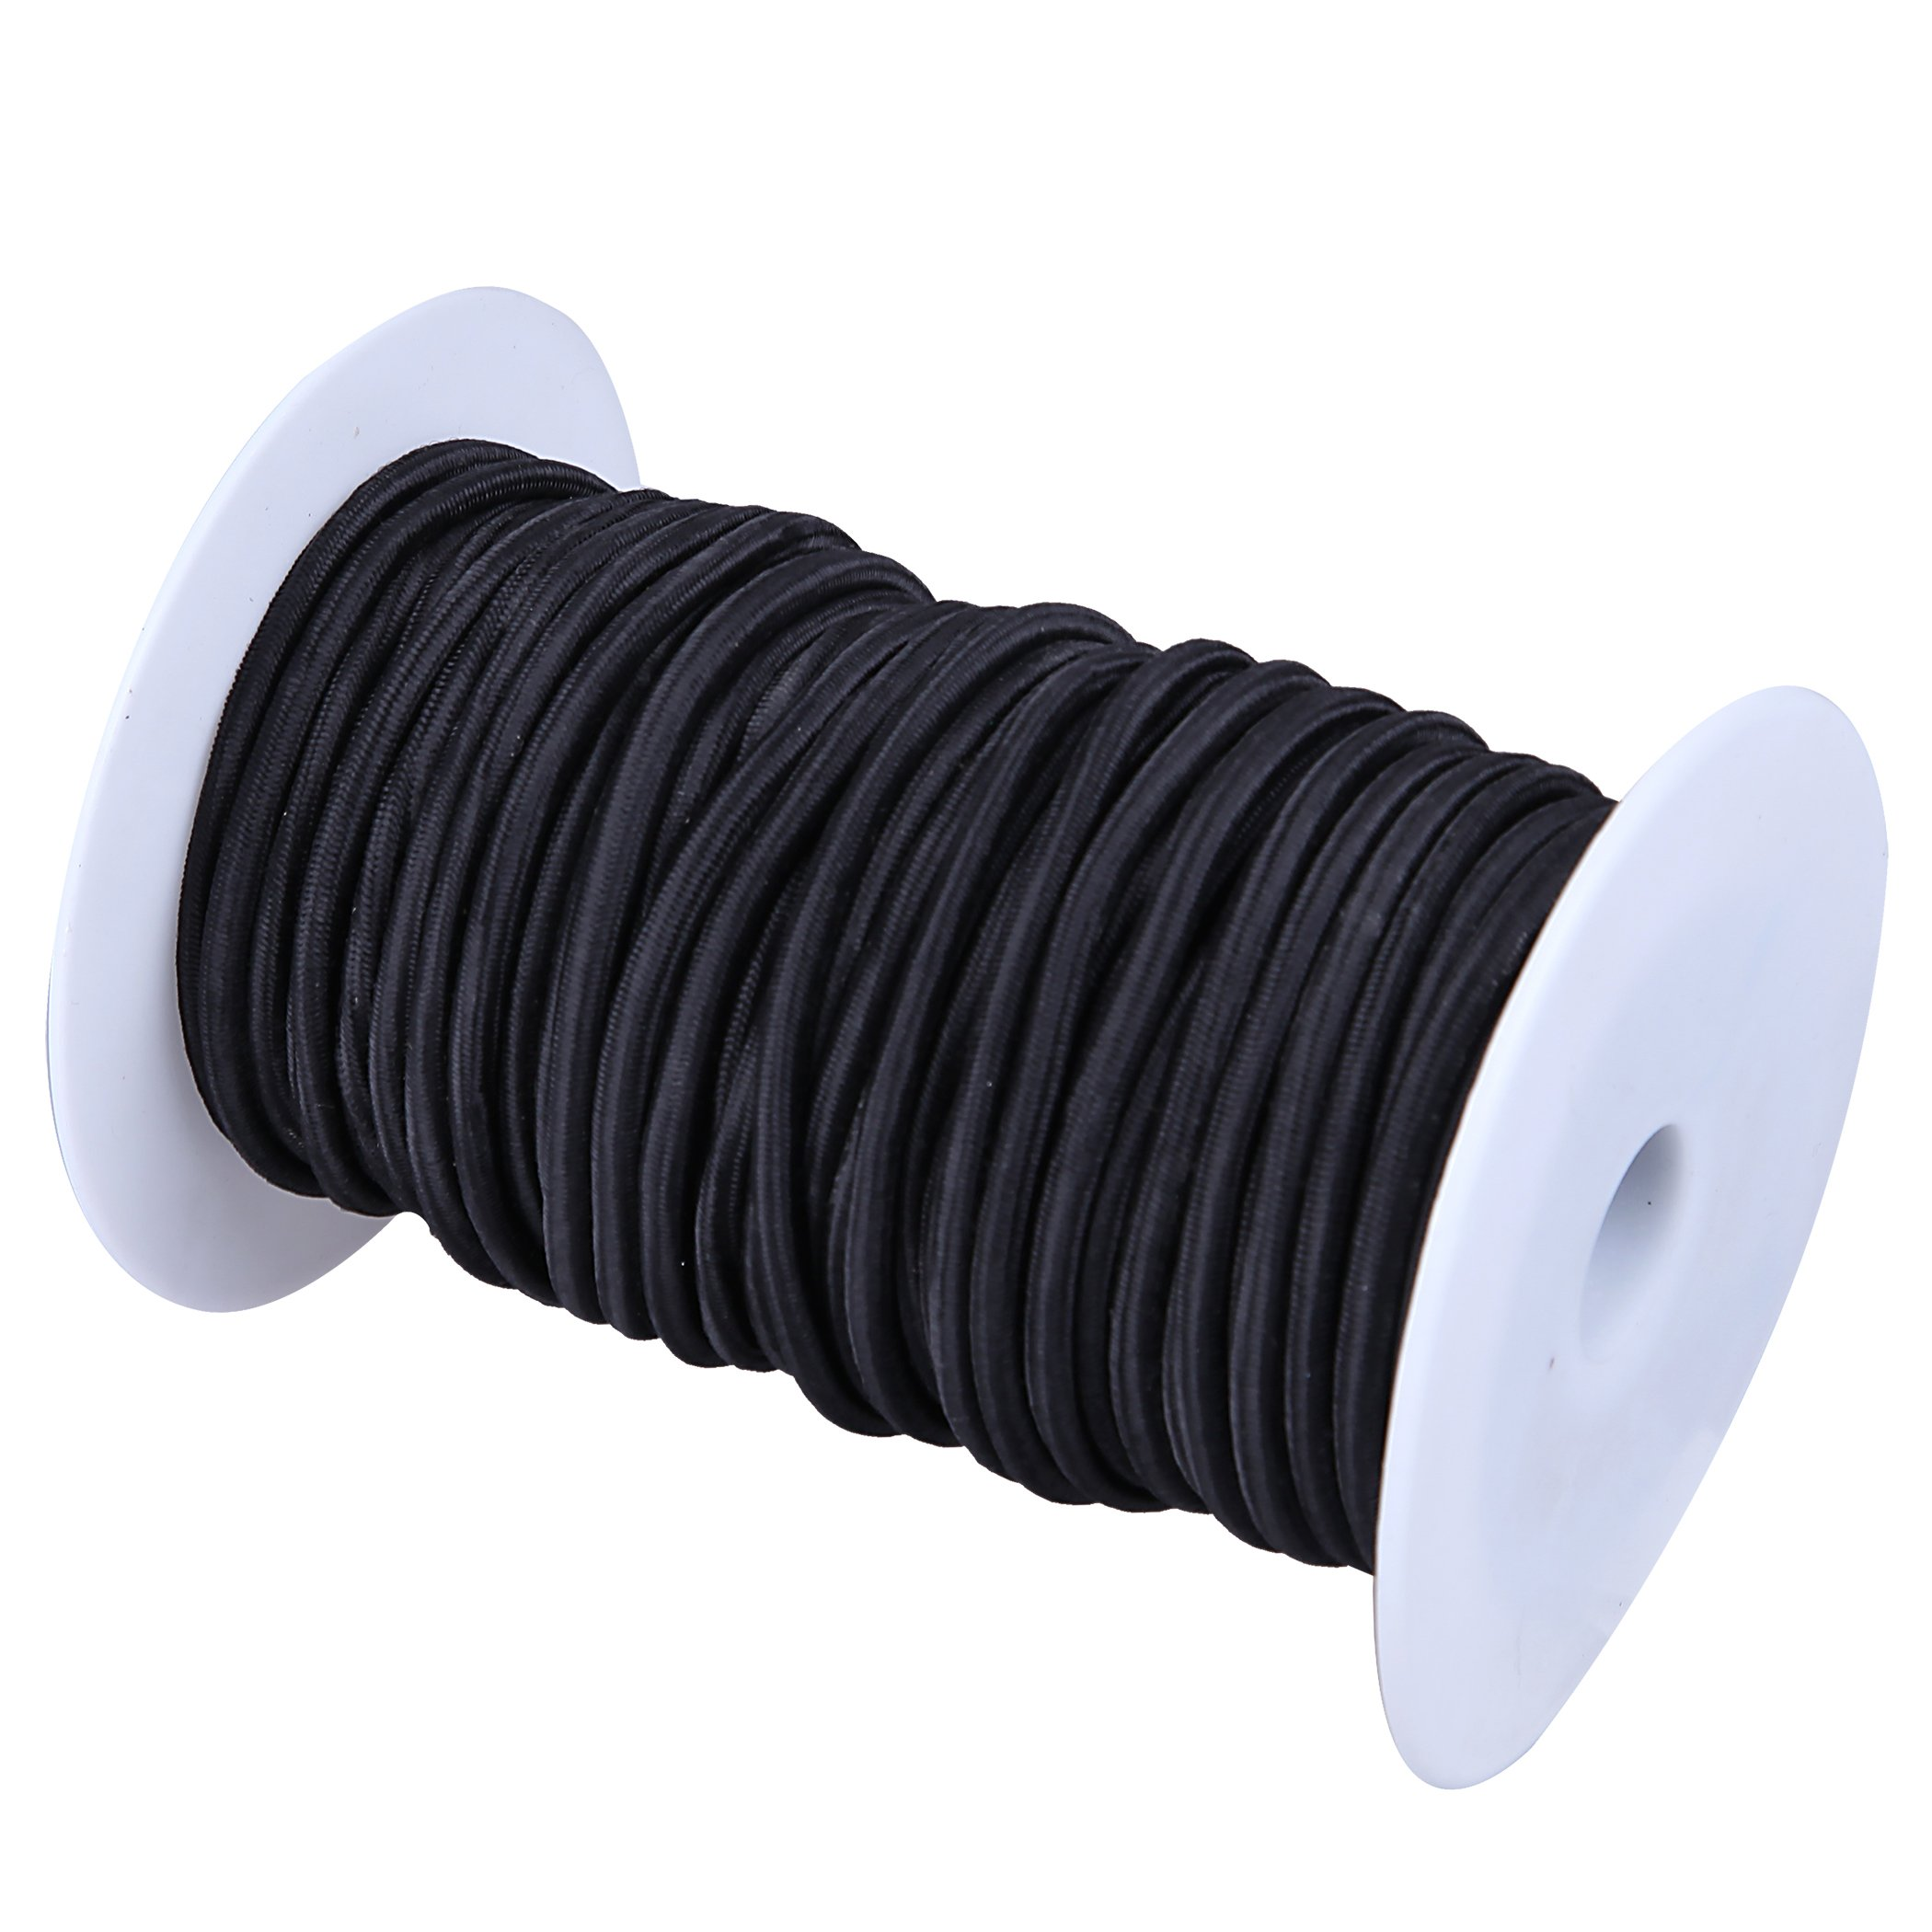 Cartman 1/8'' Elastic Cord Crafting Stretch String with Various Colors, 10kg x 100ft, Black Color by CARTMAN